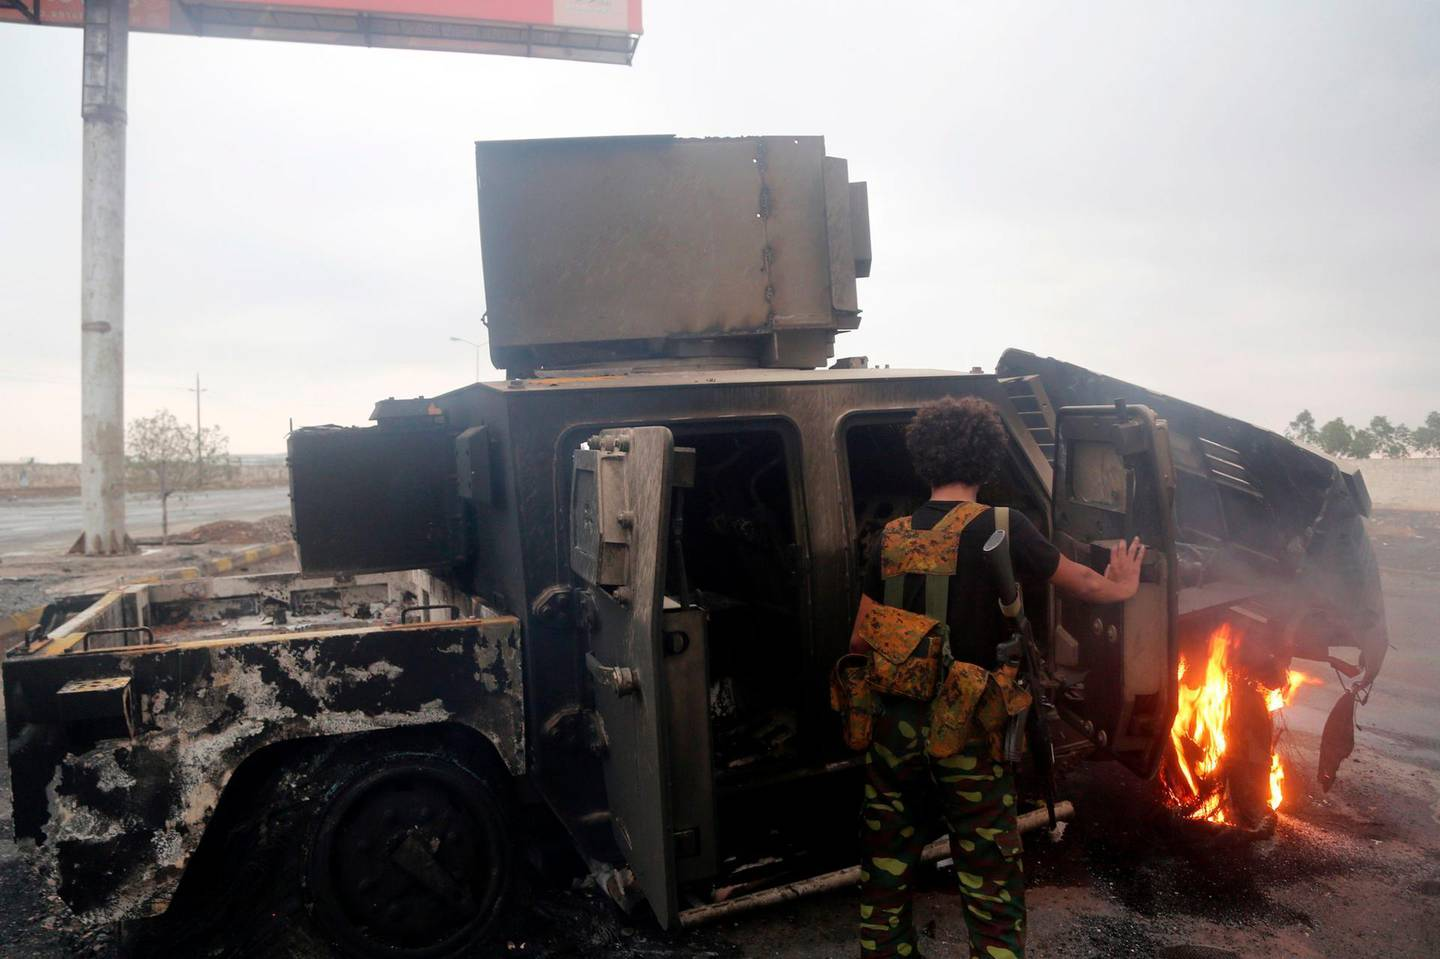 A Huthi rebel inspects a burnt armoured vehicle on September 13, 2018, reportedly destroyed in an air strike during clashes between fighters loyal to Saudi-backed exiled President Abd Rabbo Mansour Hadi and Huthi rebels near the eastern entrance of the Yemeni city of Hodeida, as coalition forces seized rebel supply routes into the coastal city.  Fighting has raged in the last two days close to the rebel-held port city of Hodeida, a crucial entry point for humanitarian aid that the Saudi-led coalition alleges also serves as a key conduit for arms to the Iran-backed Huthis.  / AFP / STRINGER